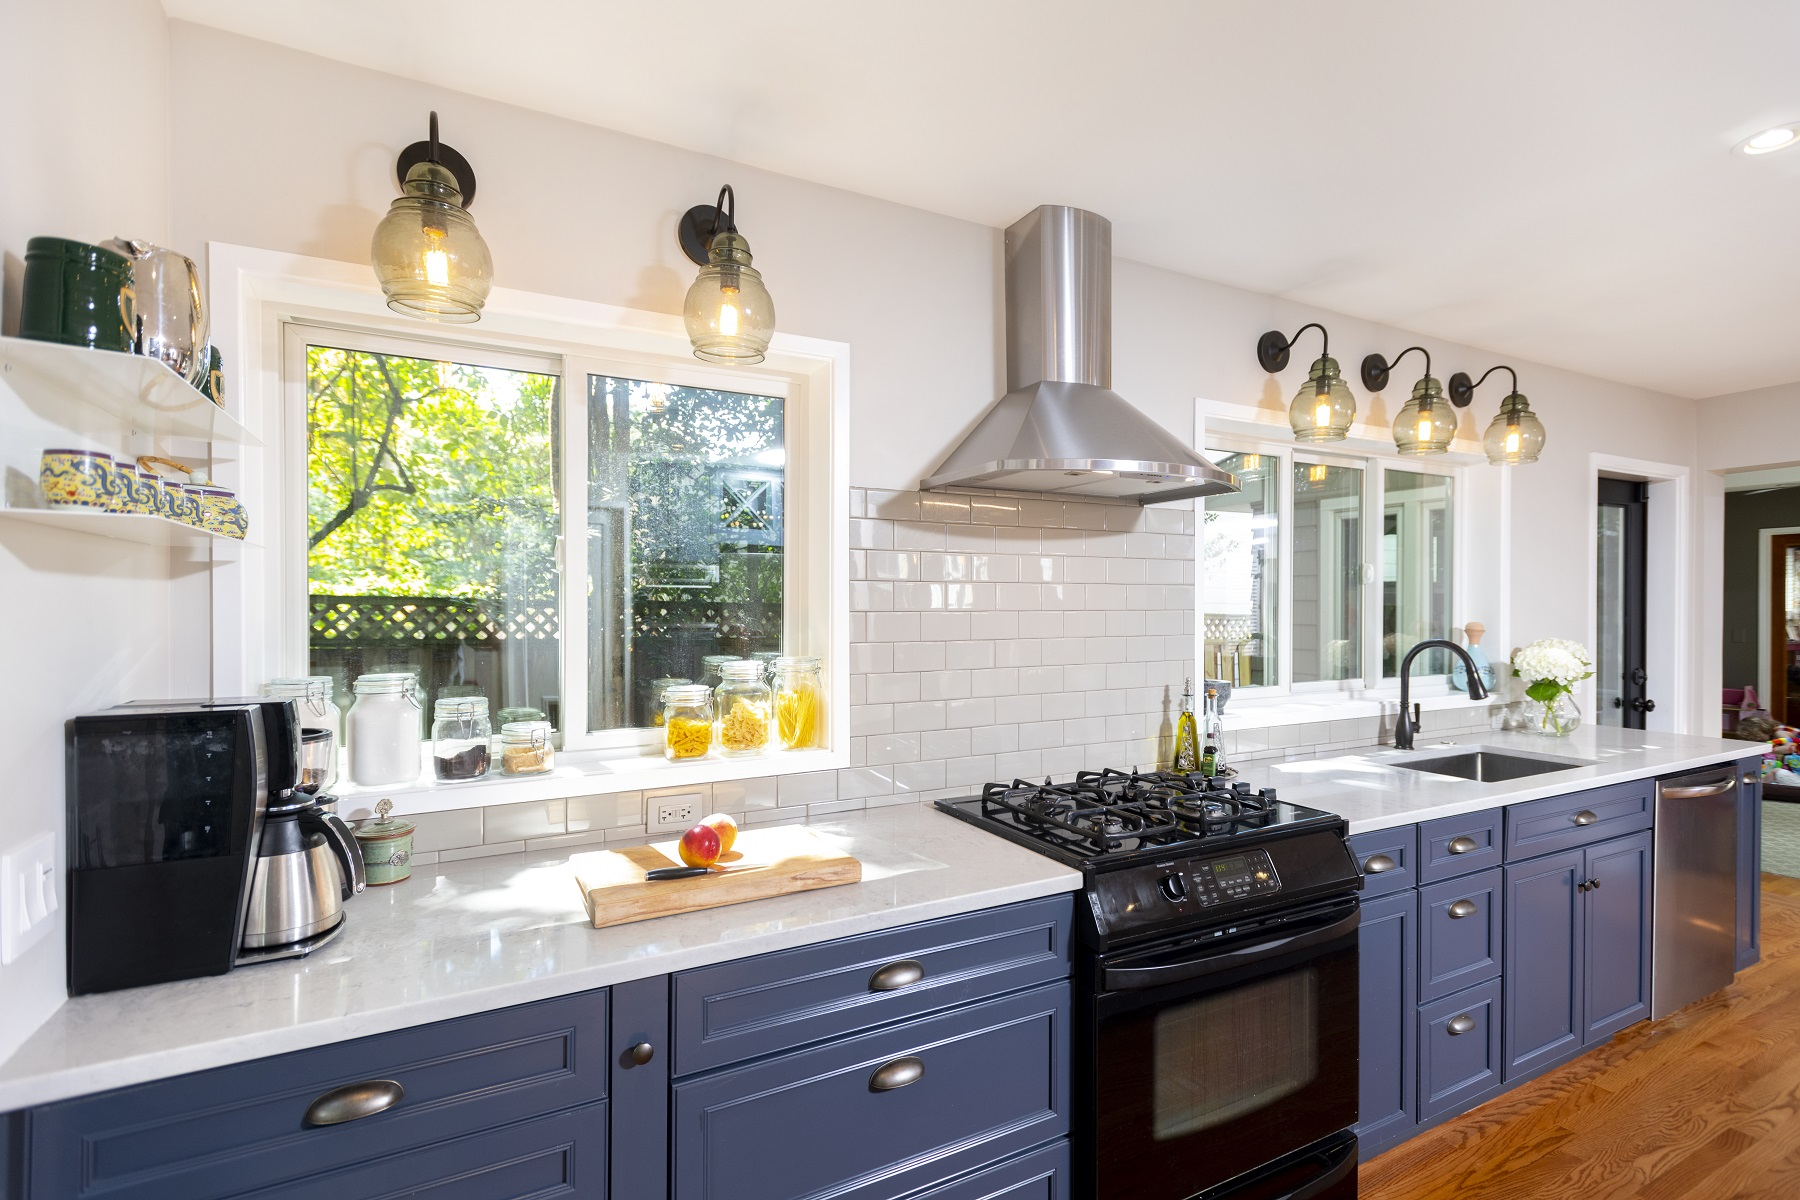 custom_interior_kitchen_remodel_wood_floors_painted_cabinets_washington_dc (1)